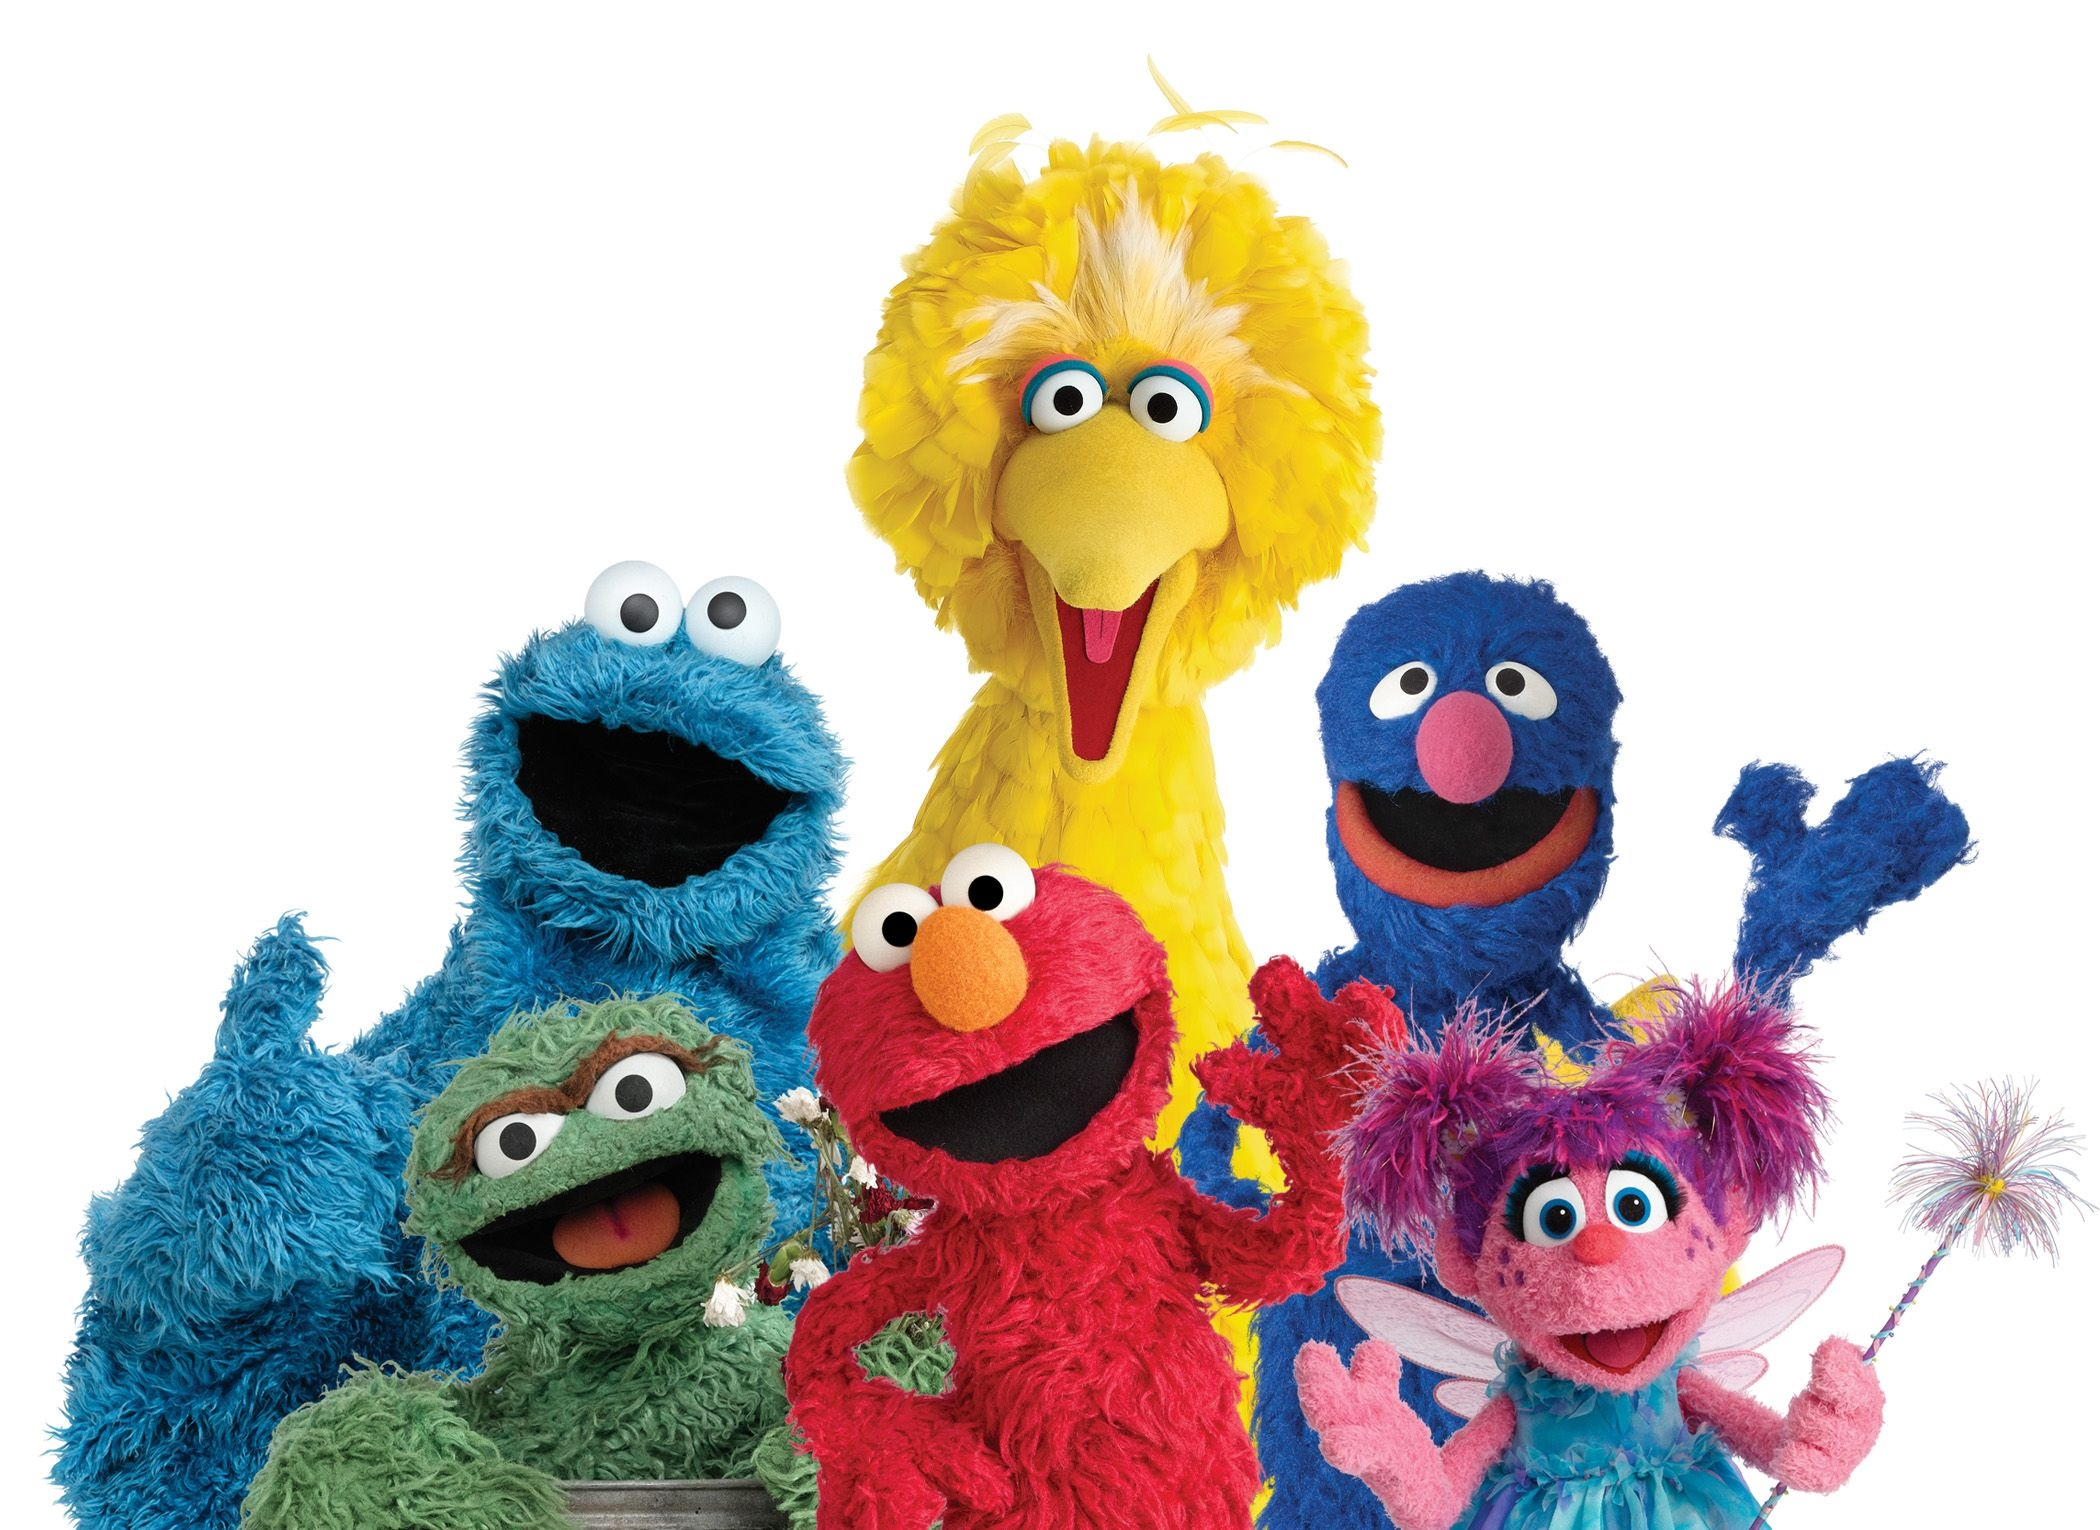 This is a picture of Revered Sesame Street Images